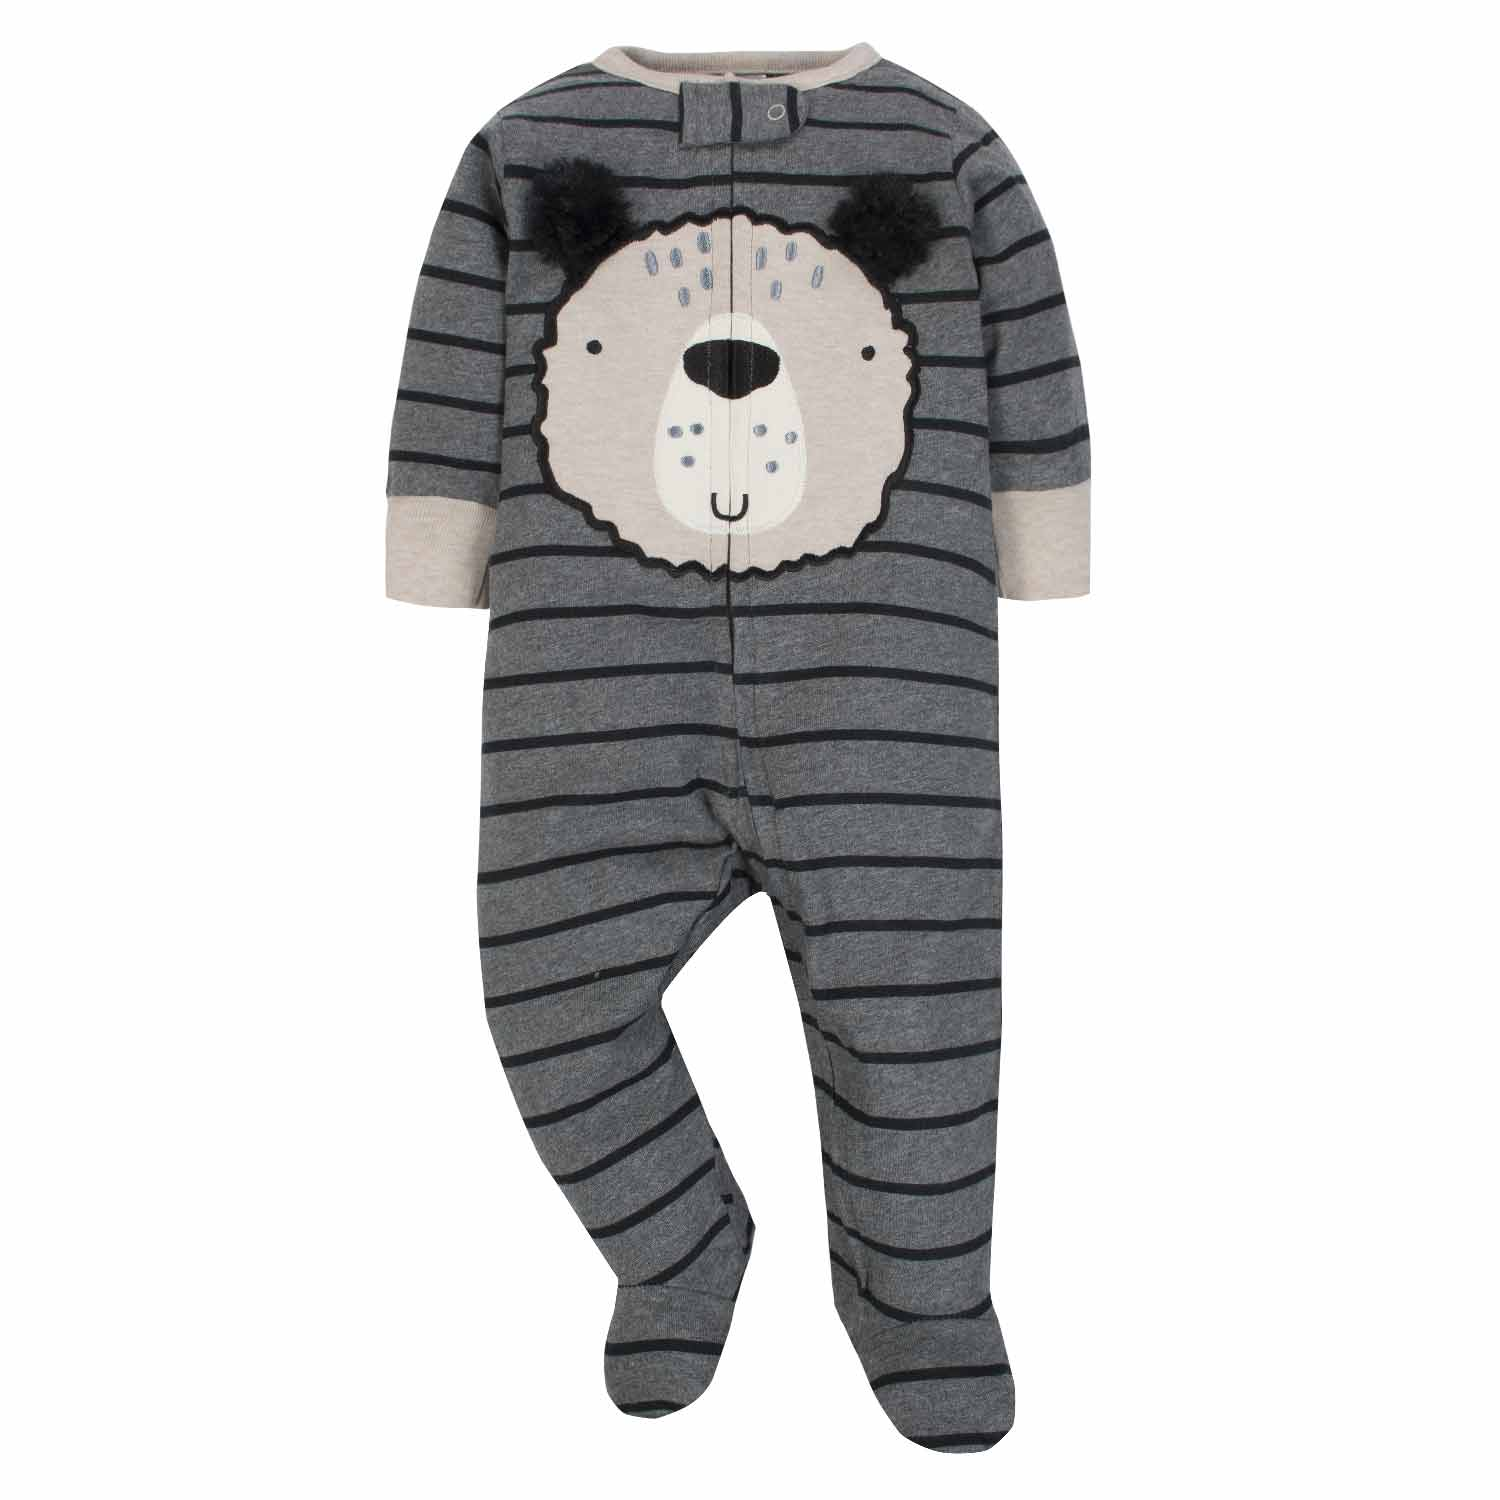 3-Pack Boys Bear Sleep N' Play - Limited Edition